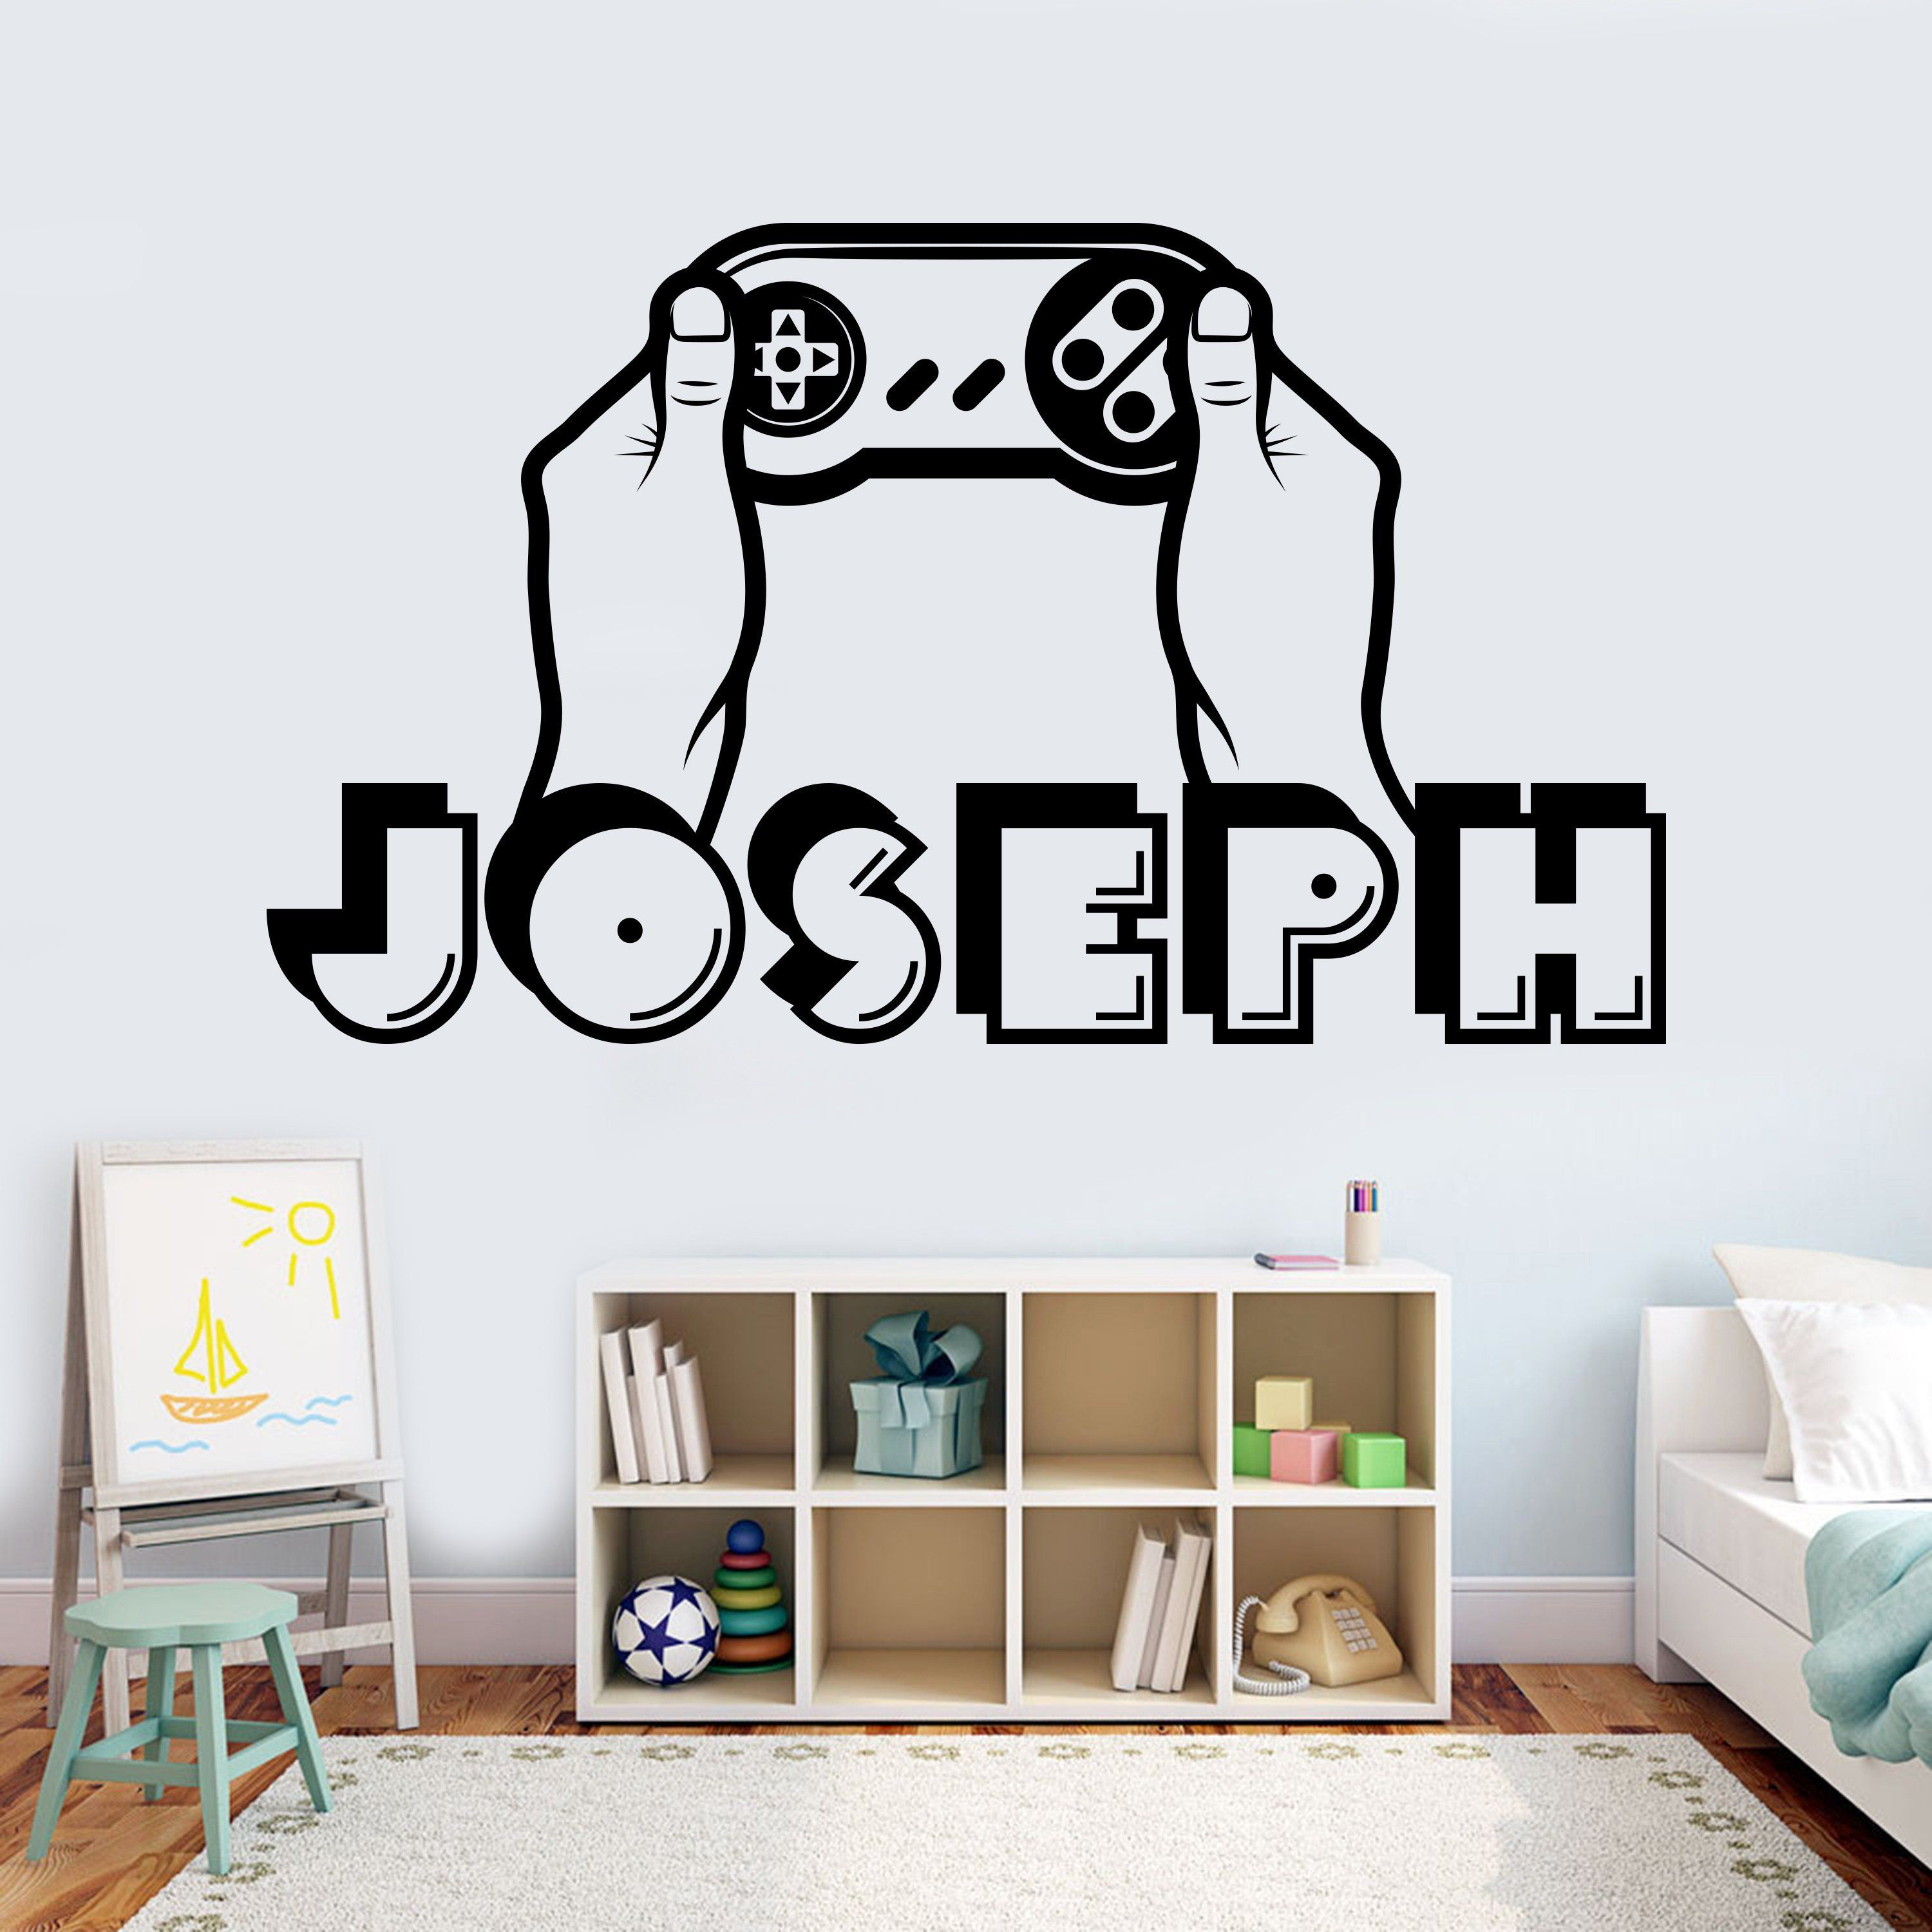 Boy Name Wall Decal Personalized Gamer Name Decal 3d Sticker